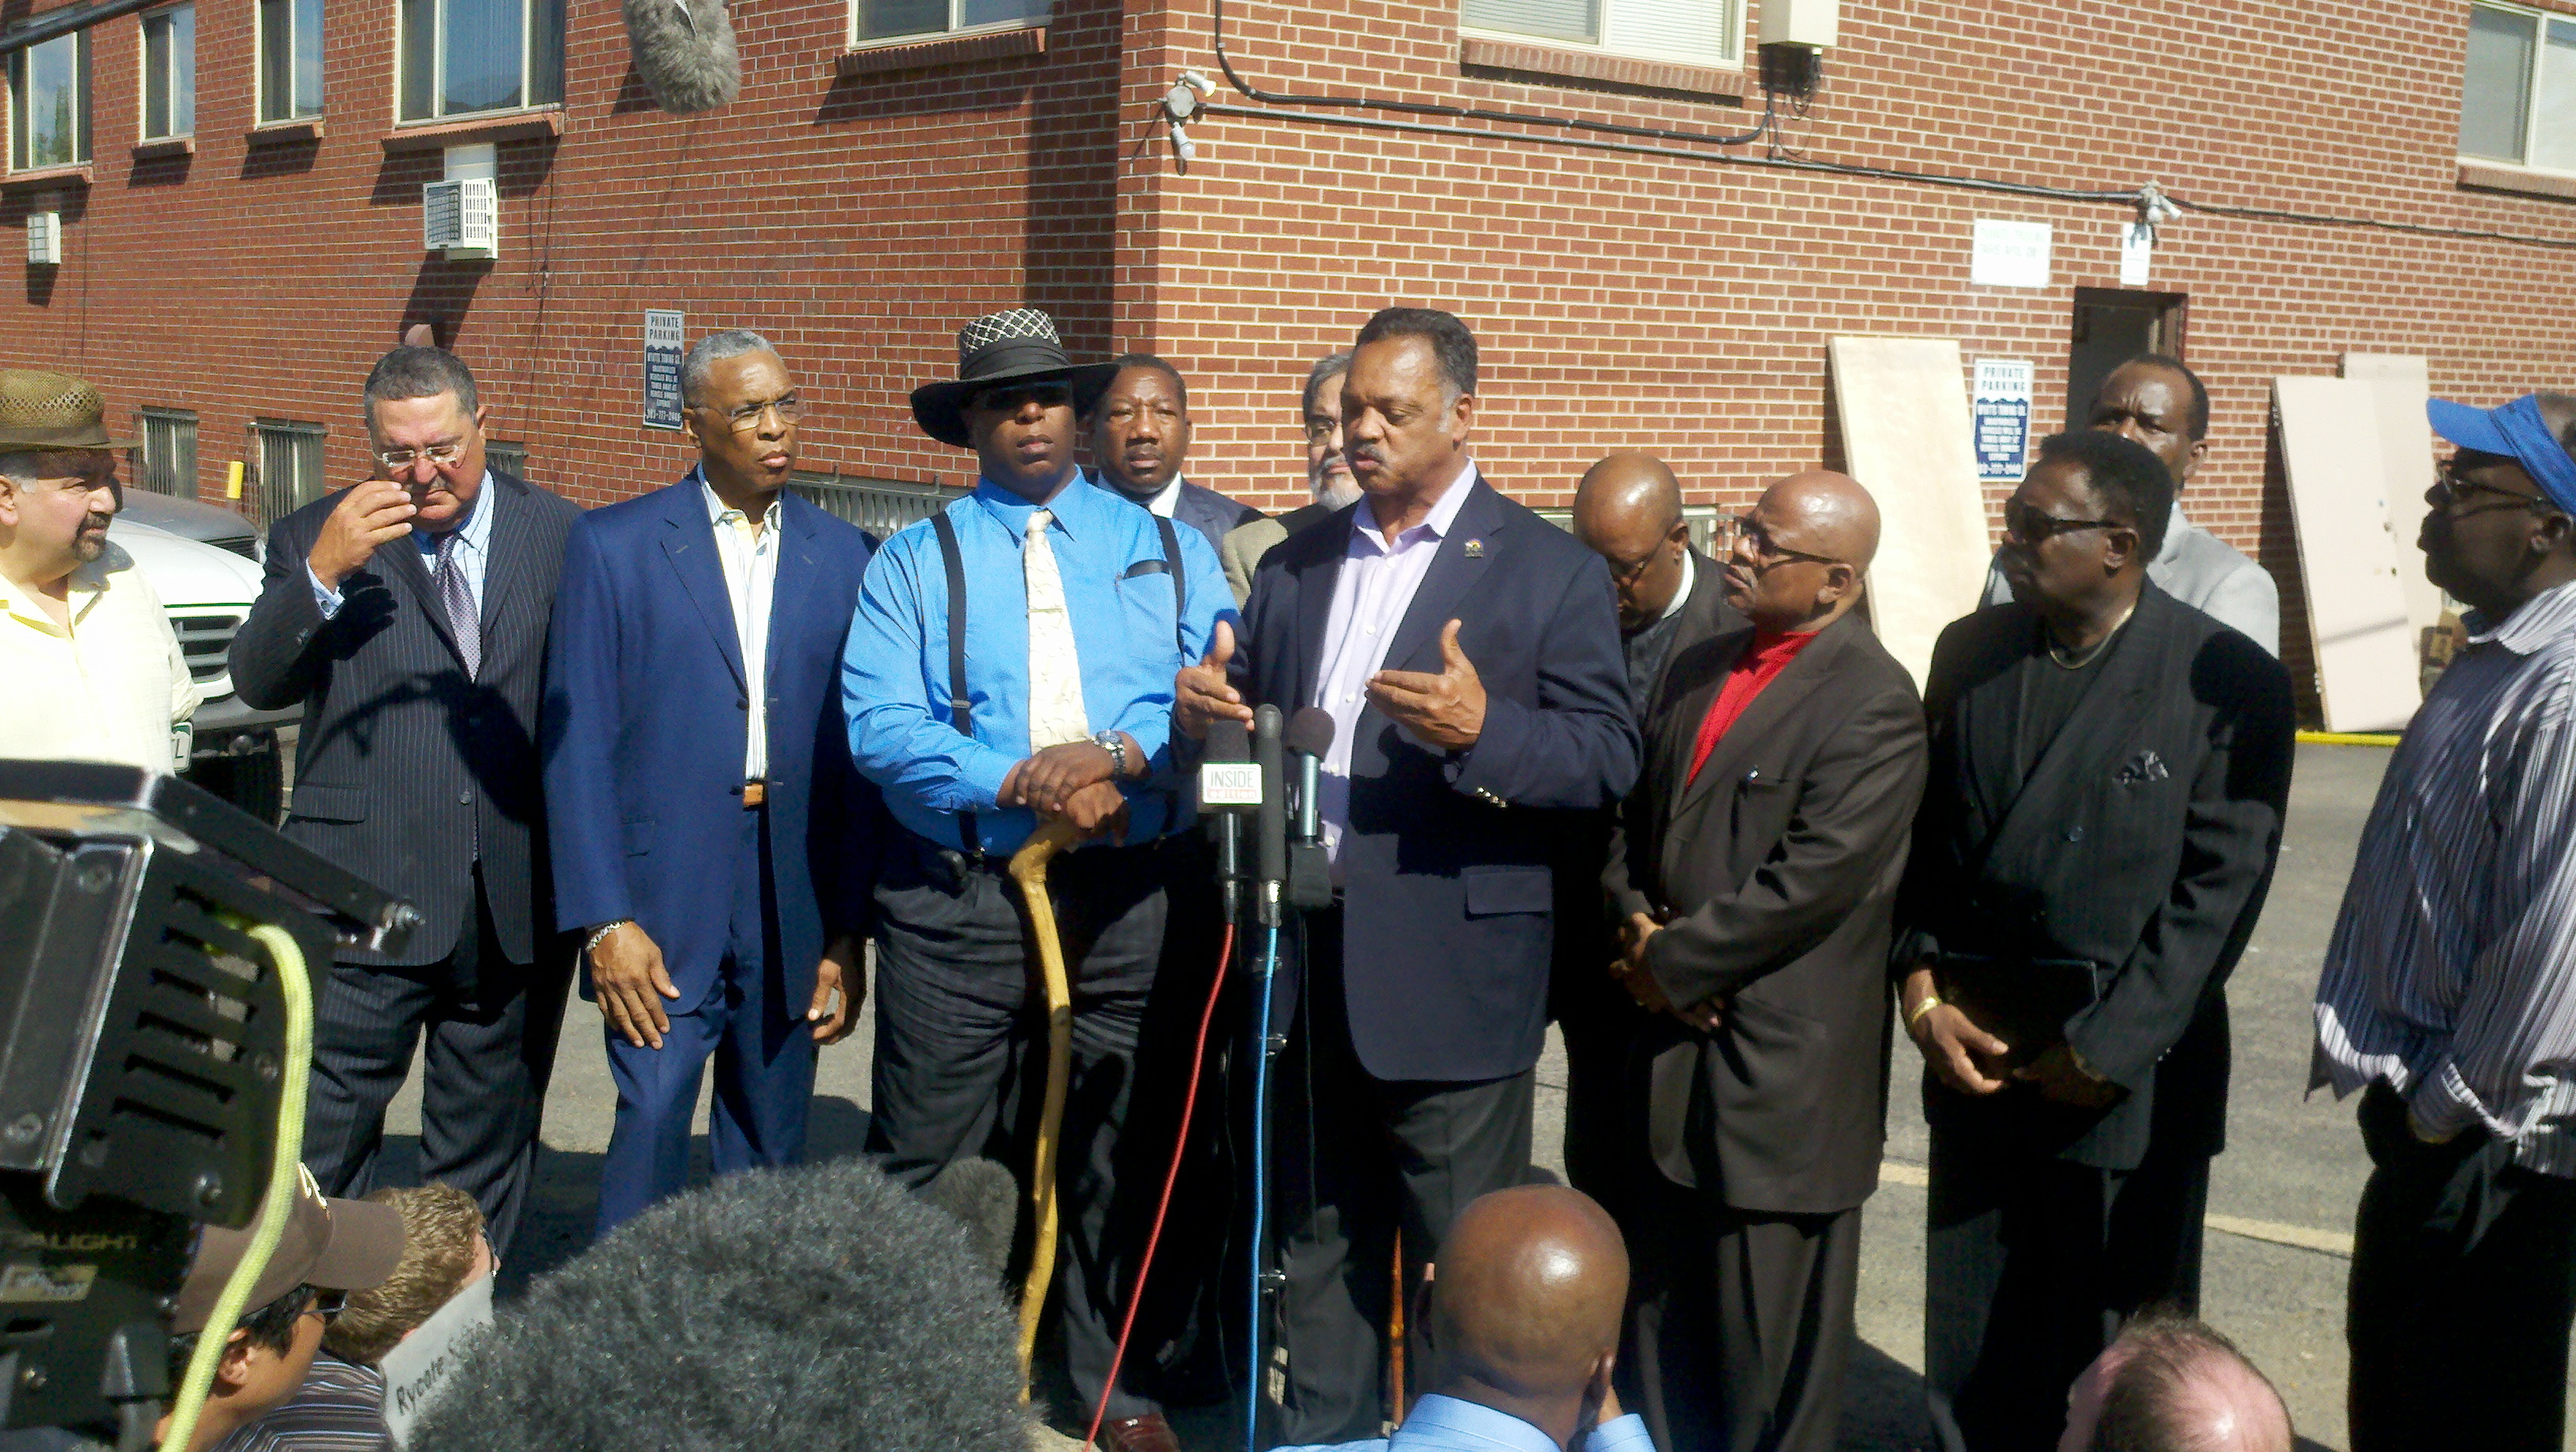 Jesse Jackson speaks in front of suspected gunman James Holmes' apartment, July 26, 2012.